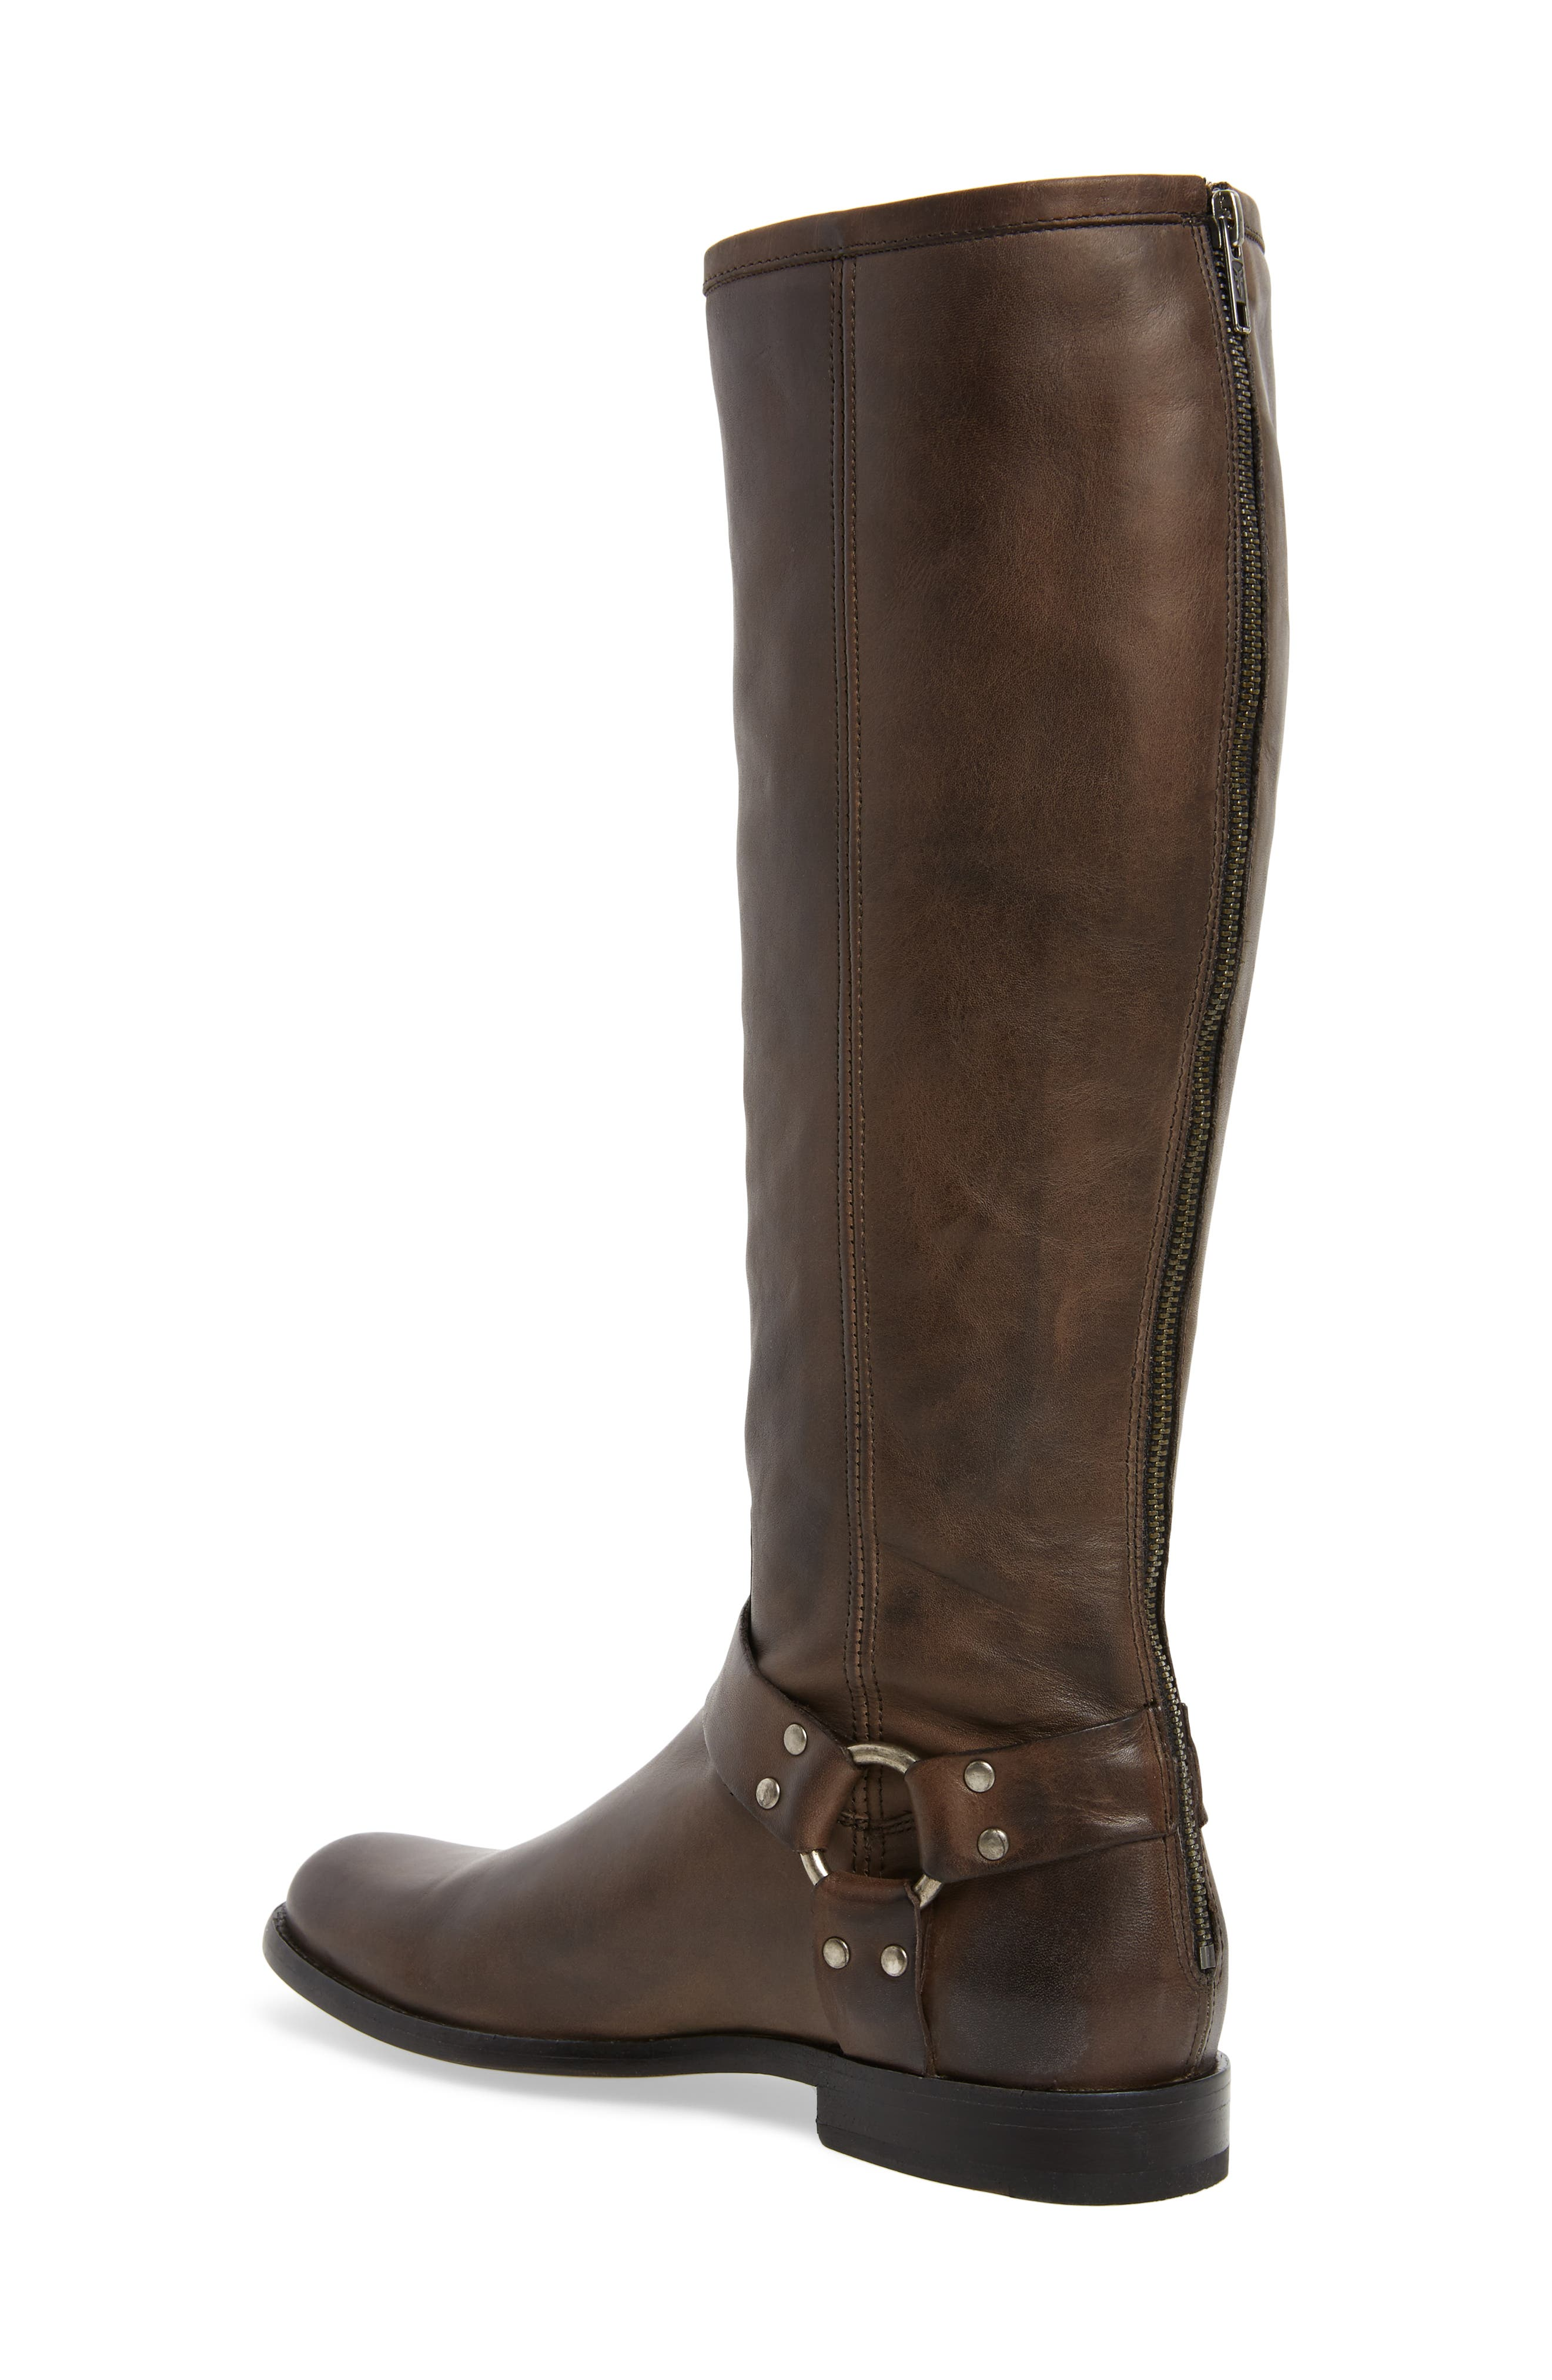 Phillip Harness Tall Boot,                             Alternate thumbnail 2, color,                             Smoke Leather